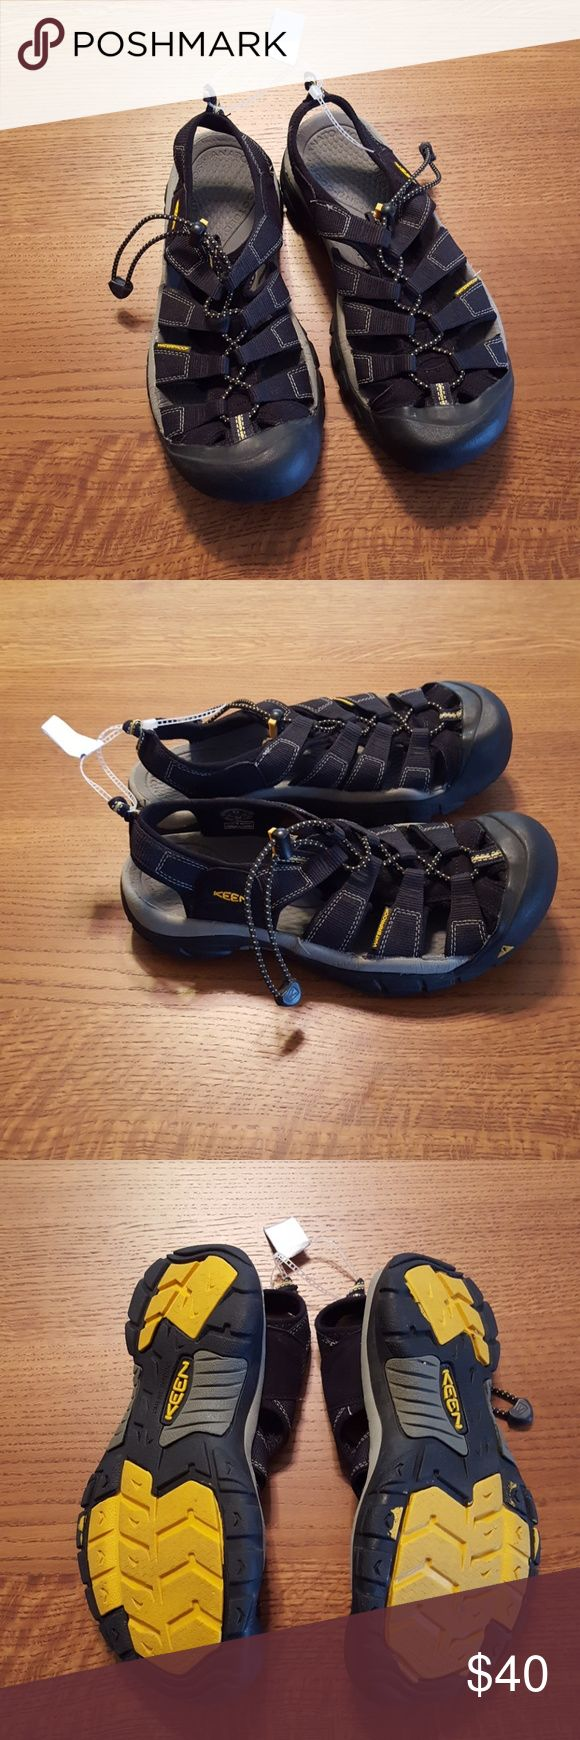 Keen water sandals New, Keen Newport H2 sandals. See the photos from their website on benefits.Runs about half size small. Has SS written on each shoe due to being a clearance non-returnable item at Cabela's( see photo #4)...will never see when wearing them. Keen Shoes Sandals & Flip-Flops